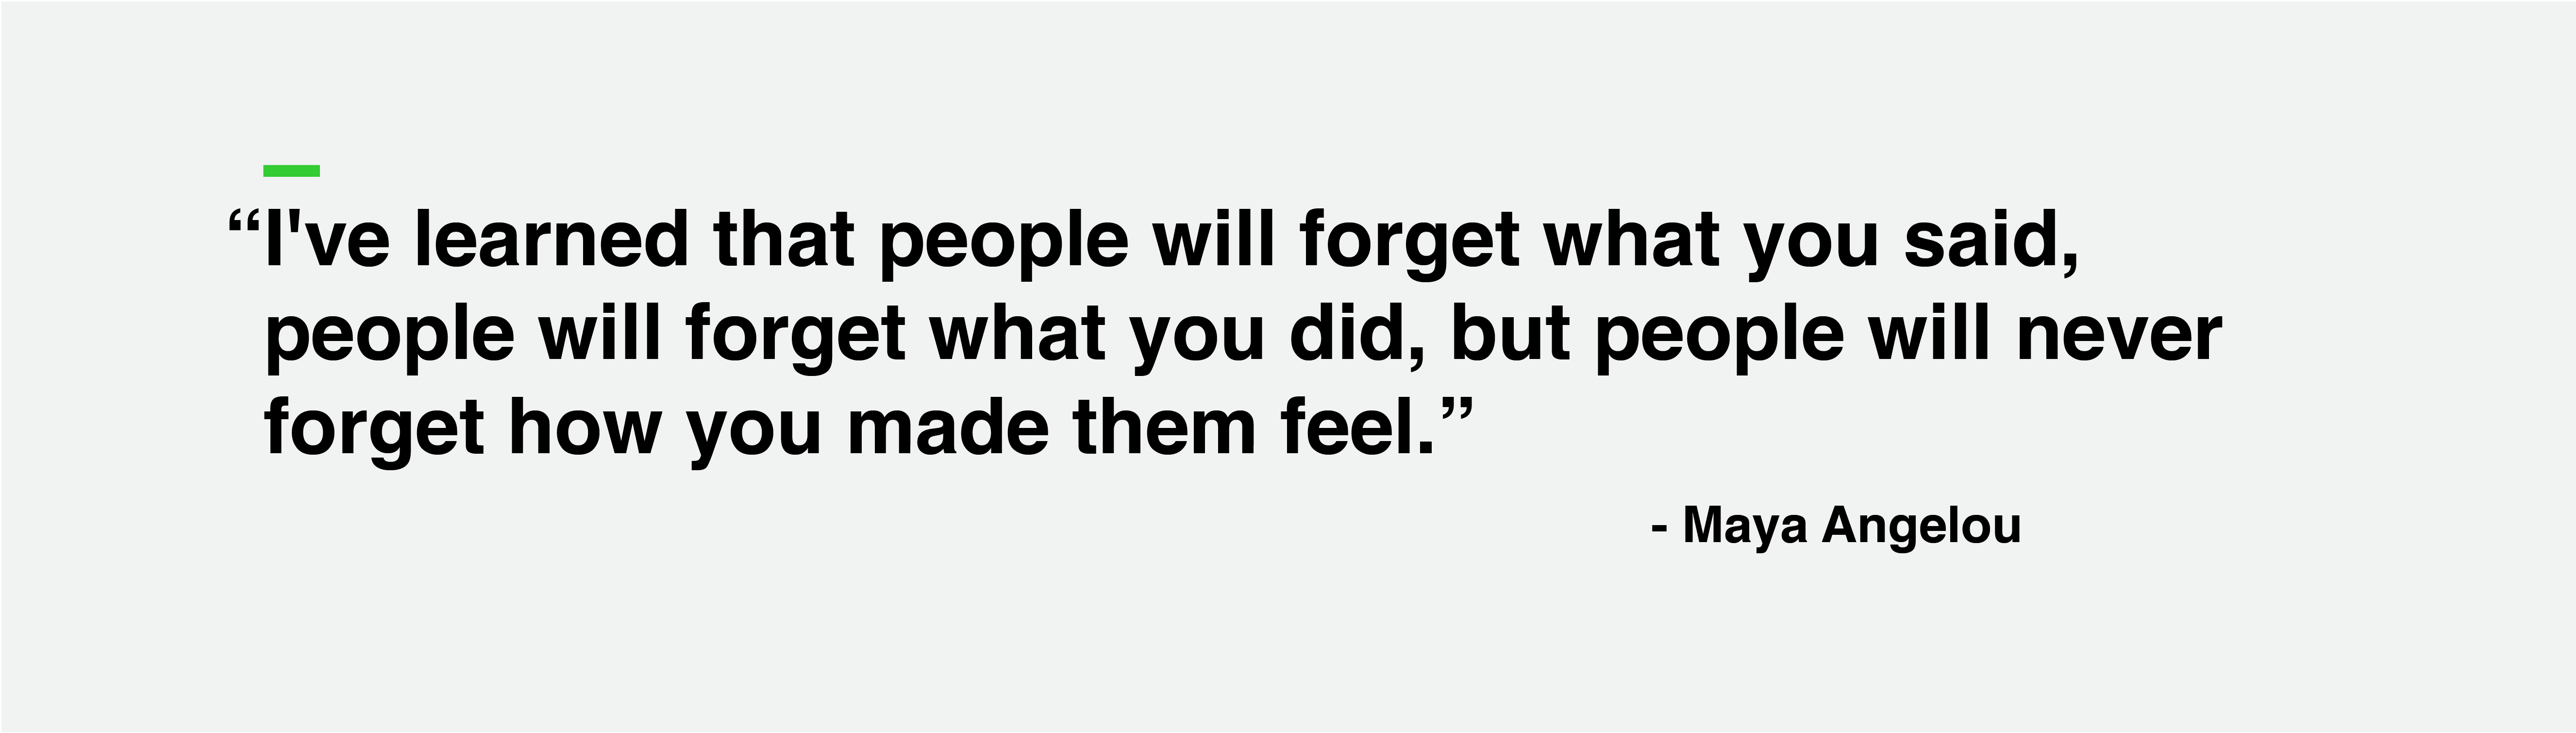 """""""I've learned that people will forget what you said, people will forget what you did, but people will never forget how you made them feel."""" - Maya Angelou"""